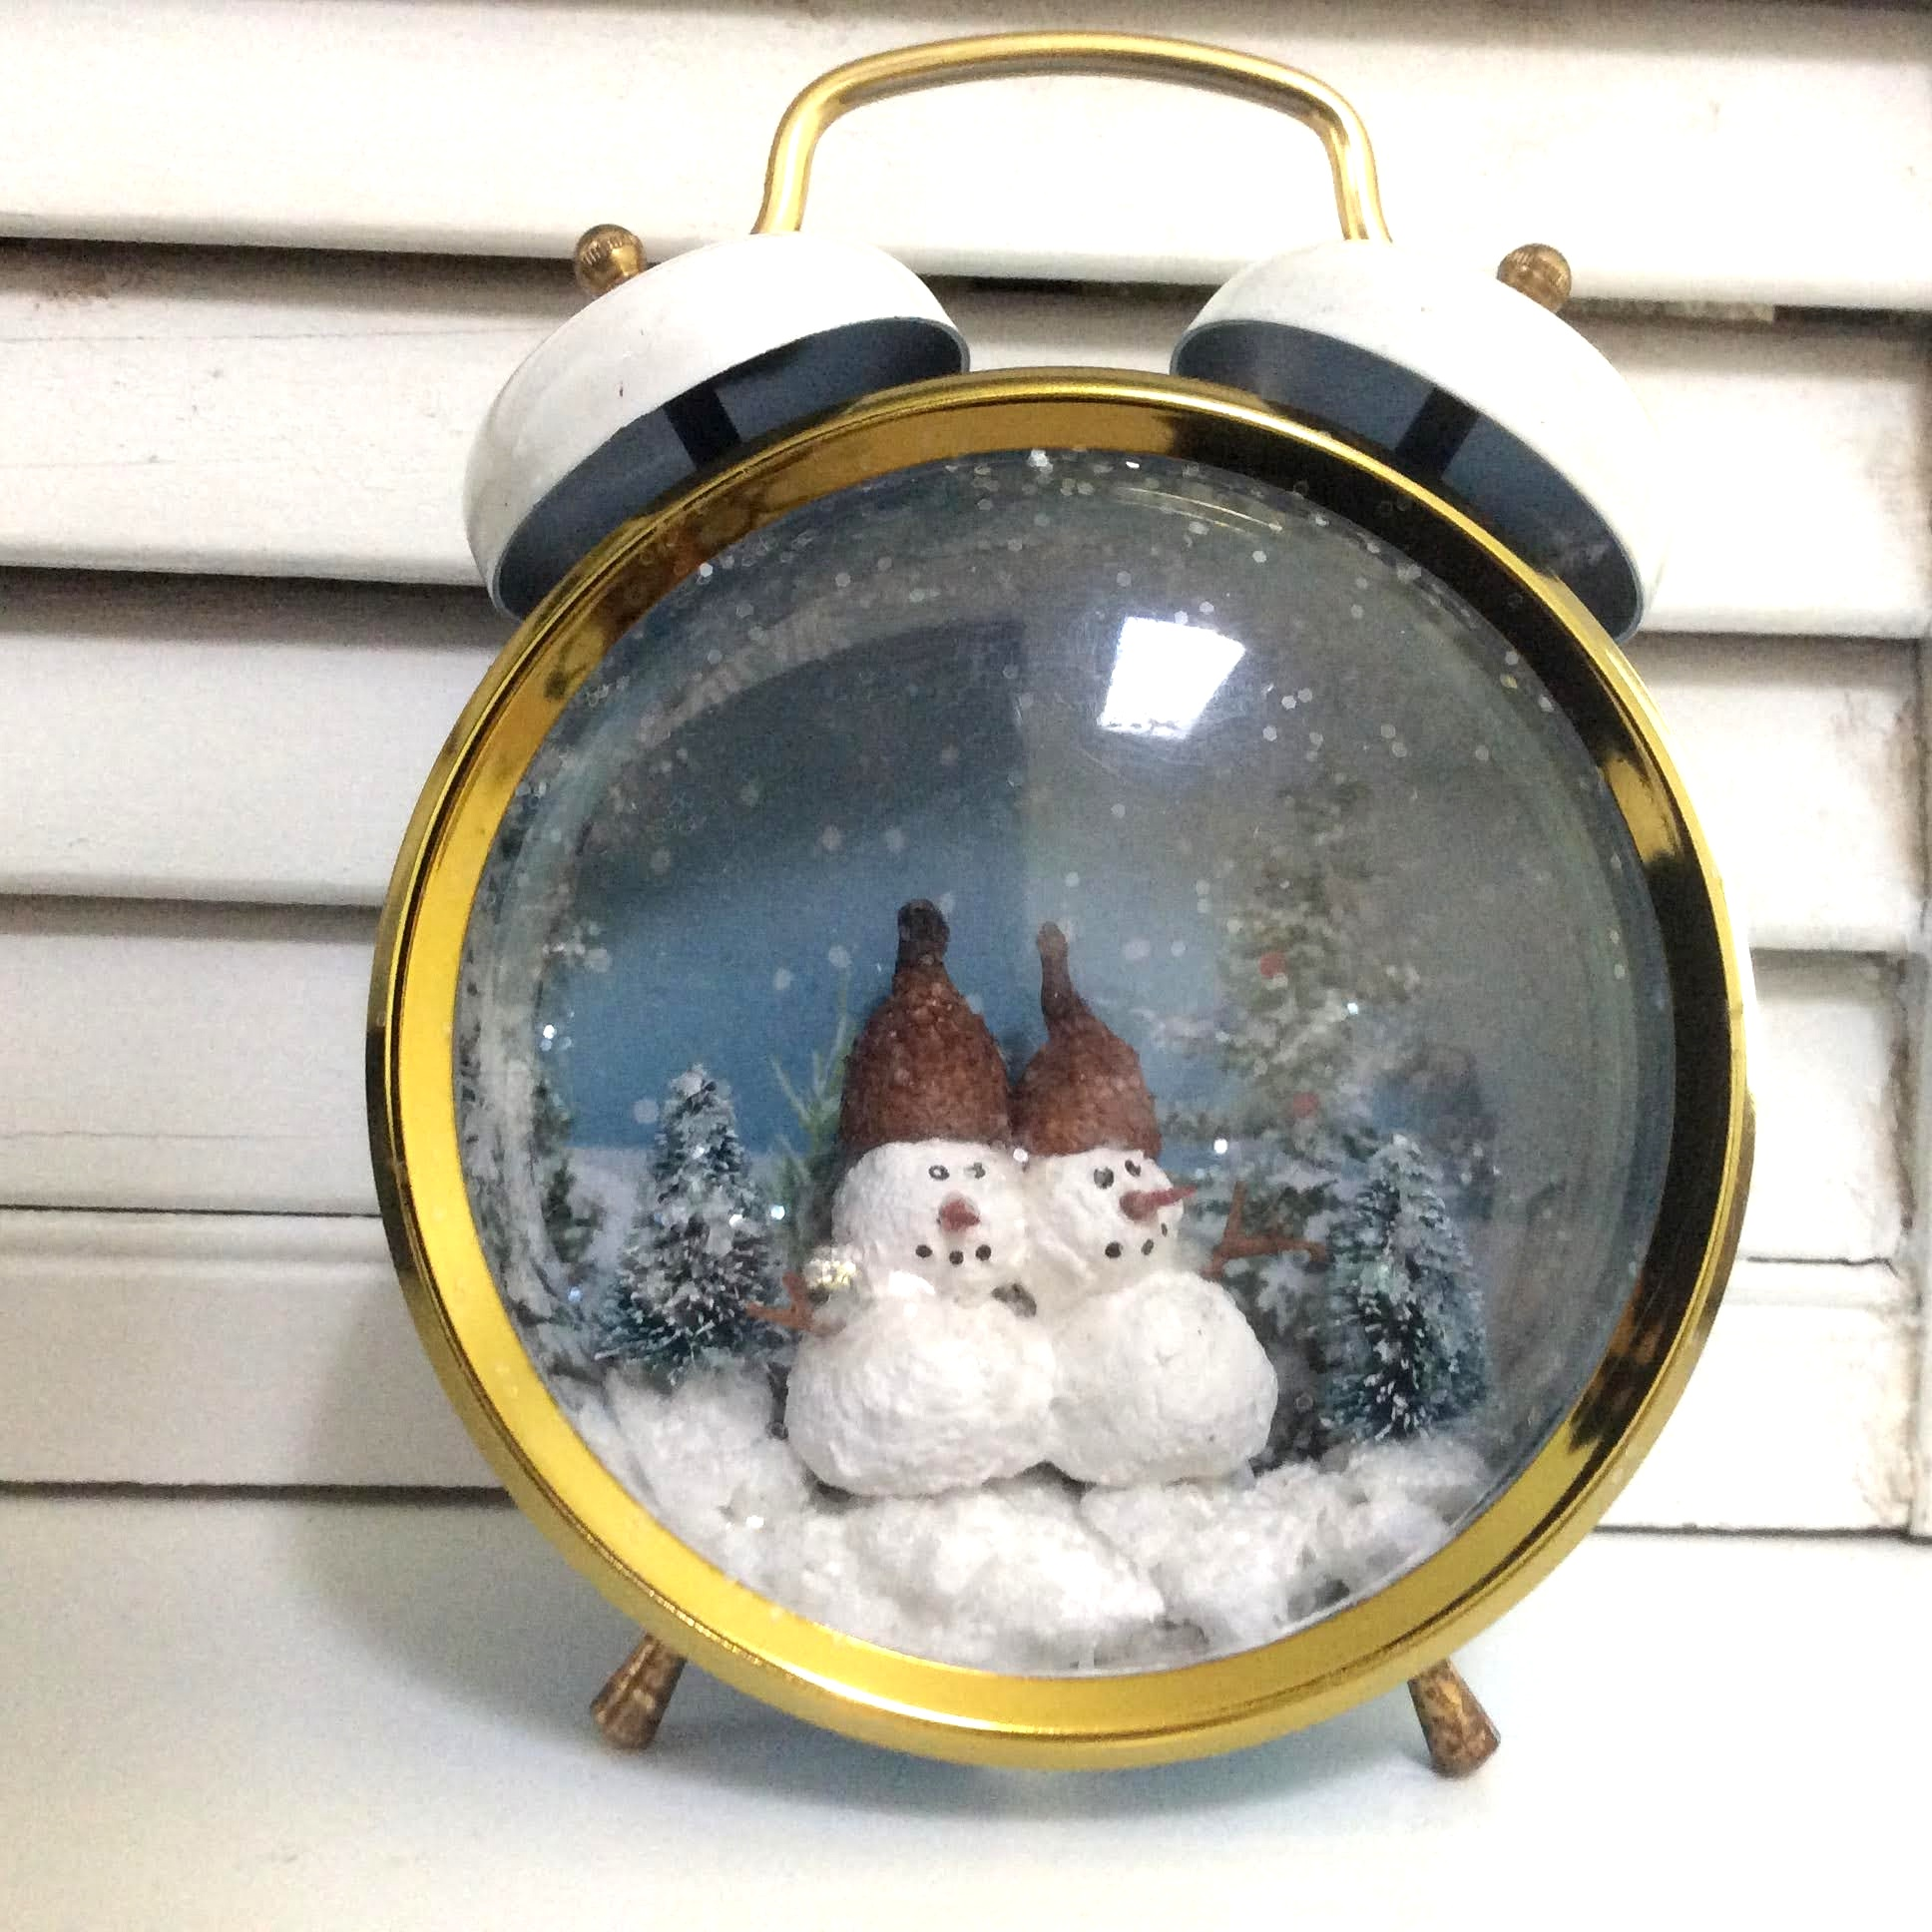 Clock snowmen snowglobe by Fresh Vintage By Lisa S, featured on DIY Salvaged Junk Projects 553 on Funky Junk!